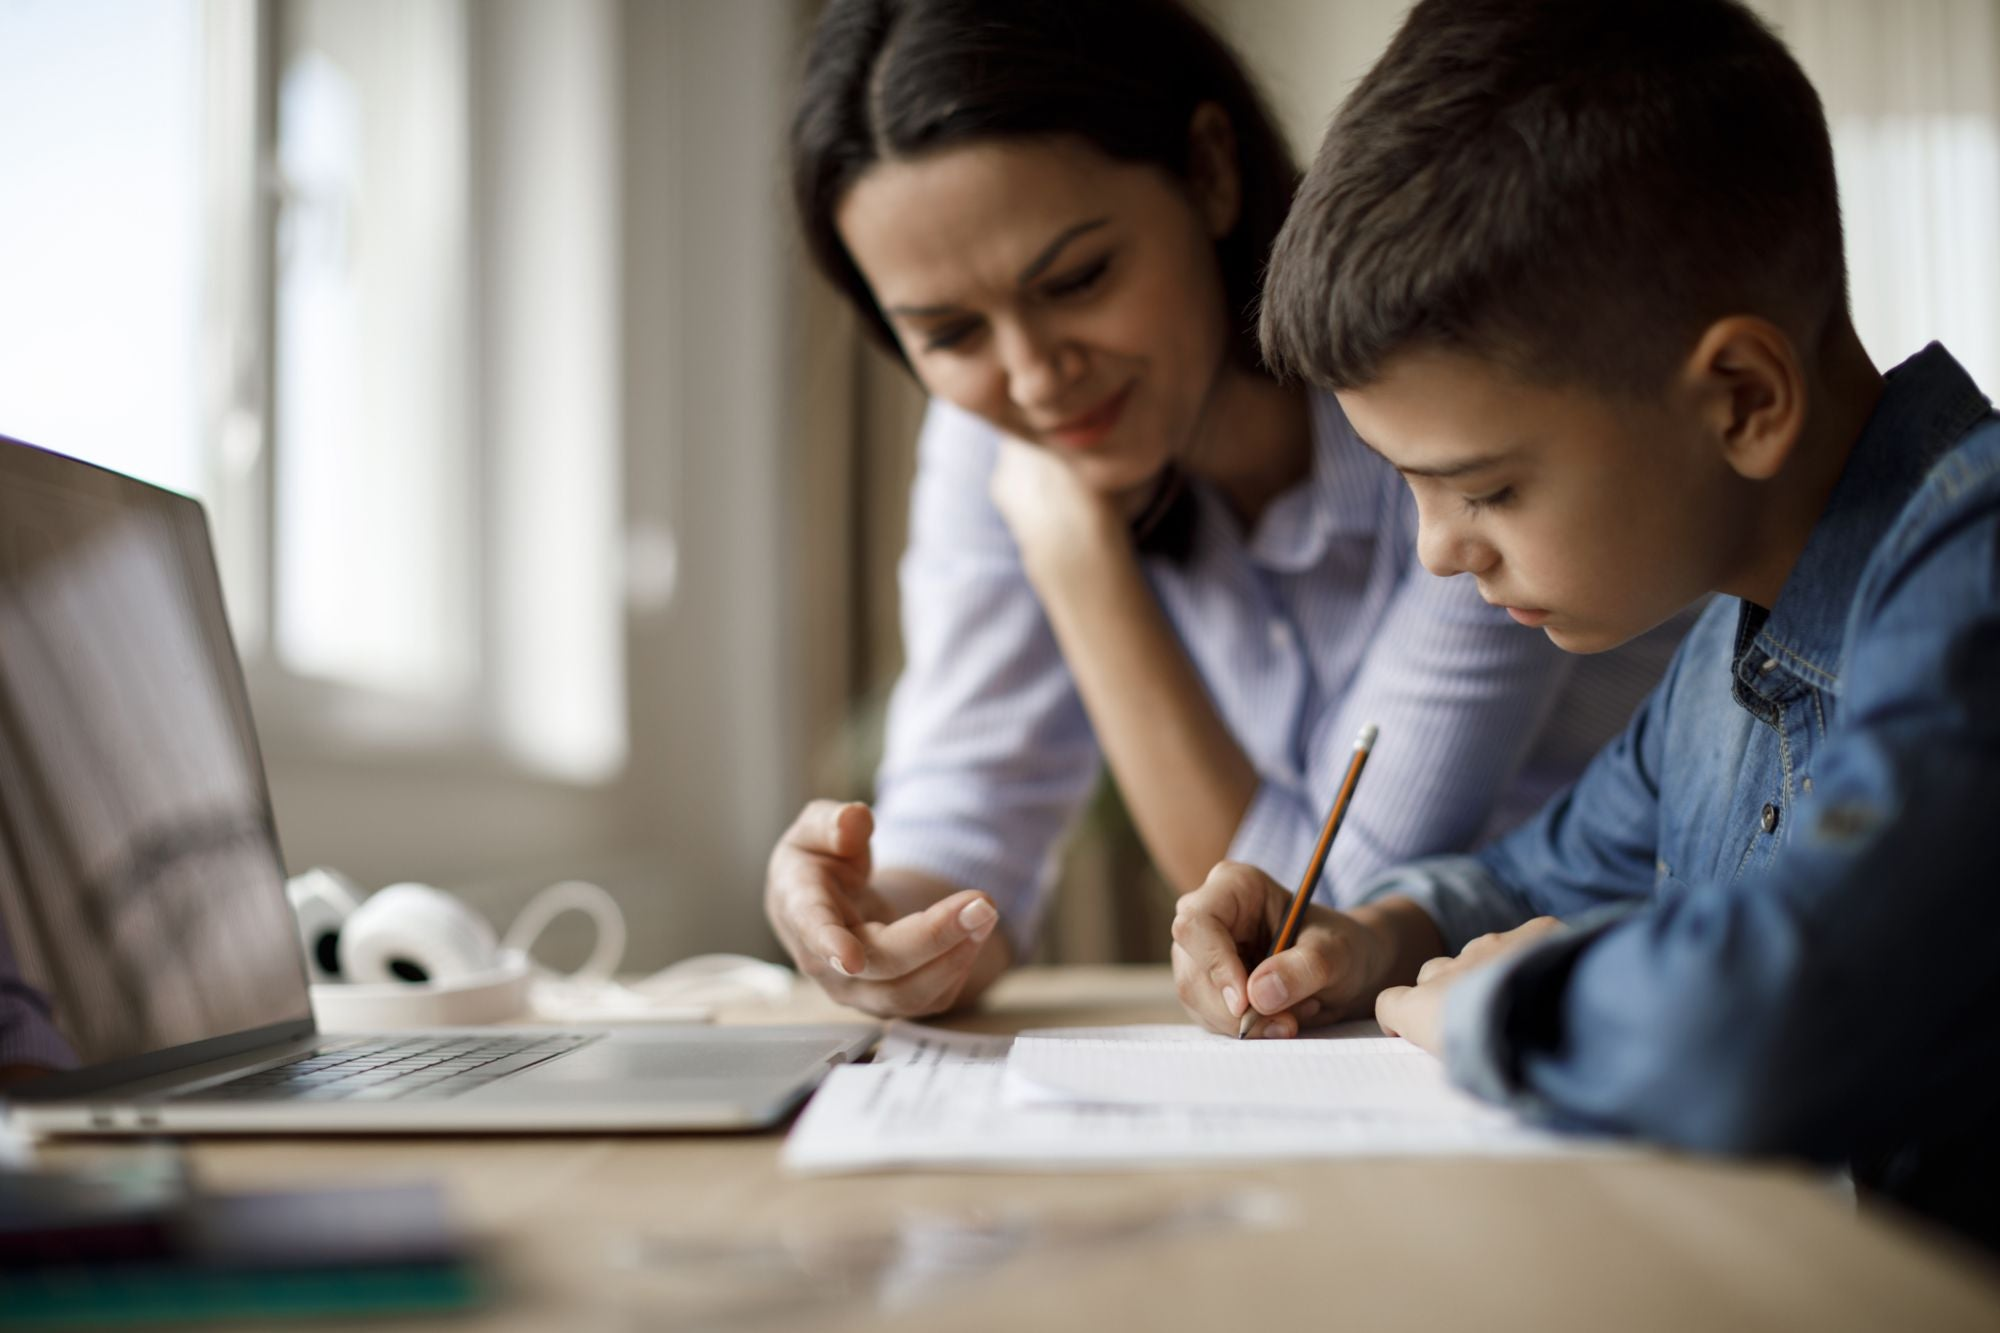 10 Tips for Entrepreneurs to Actually Get Work Done While Homeschooling Kids